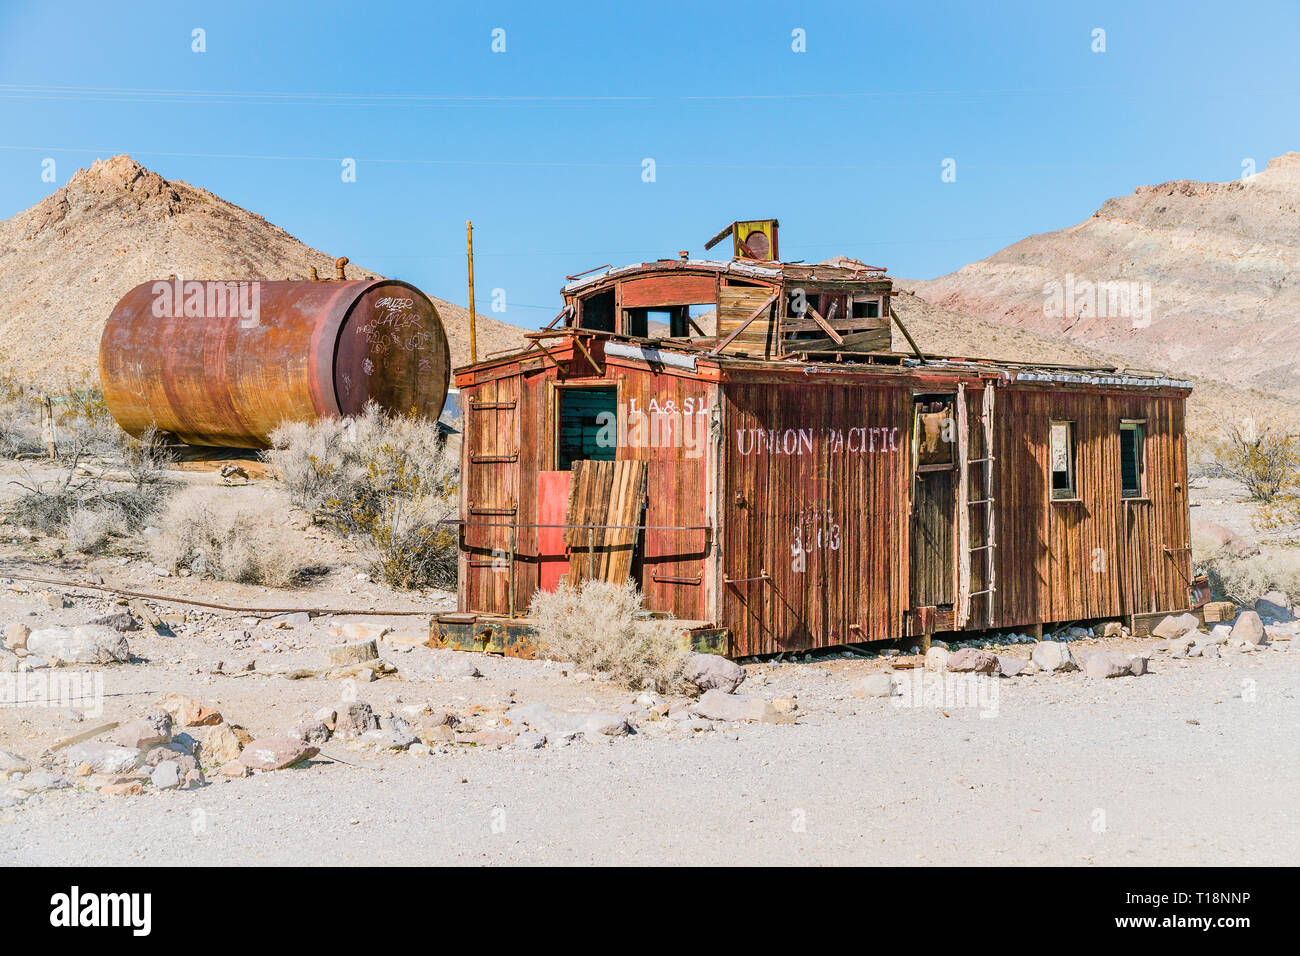 An abandoned, wheel-less Union Pacific caboose decaying in the Mojave Desert ghost town of Rhyolite. A caboose is a manned North American railroad car - Stock Image